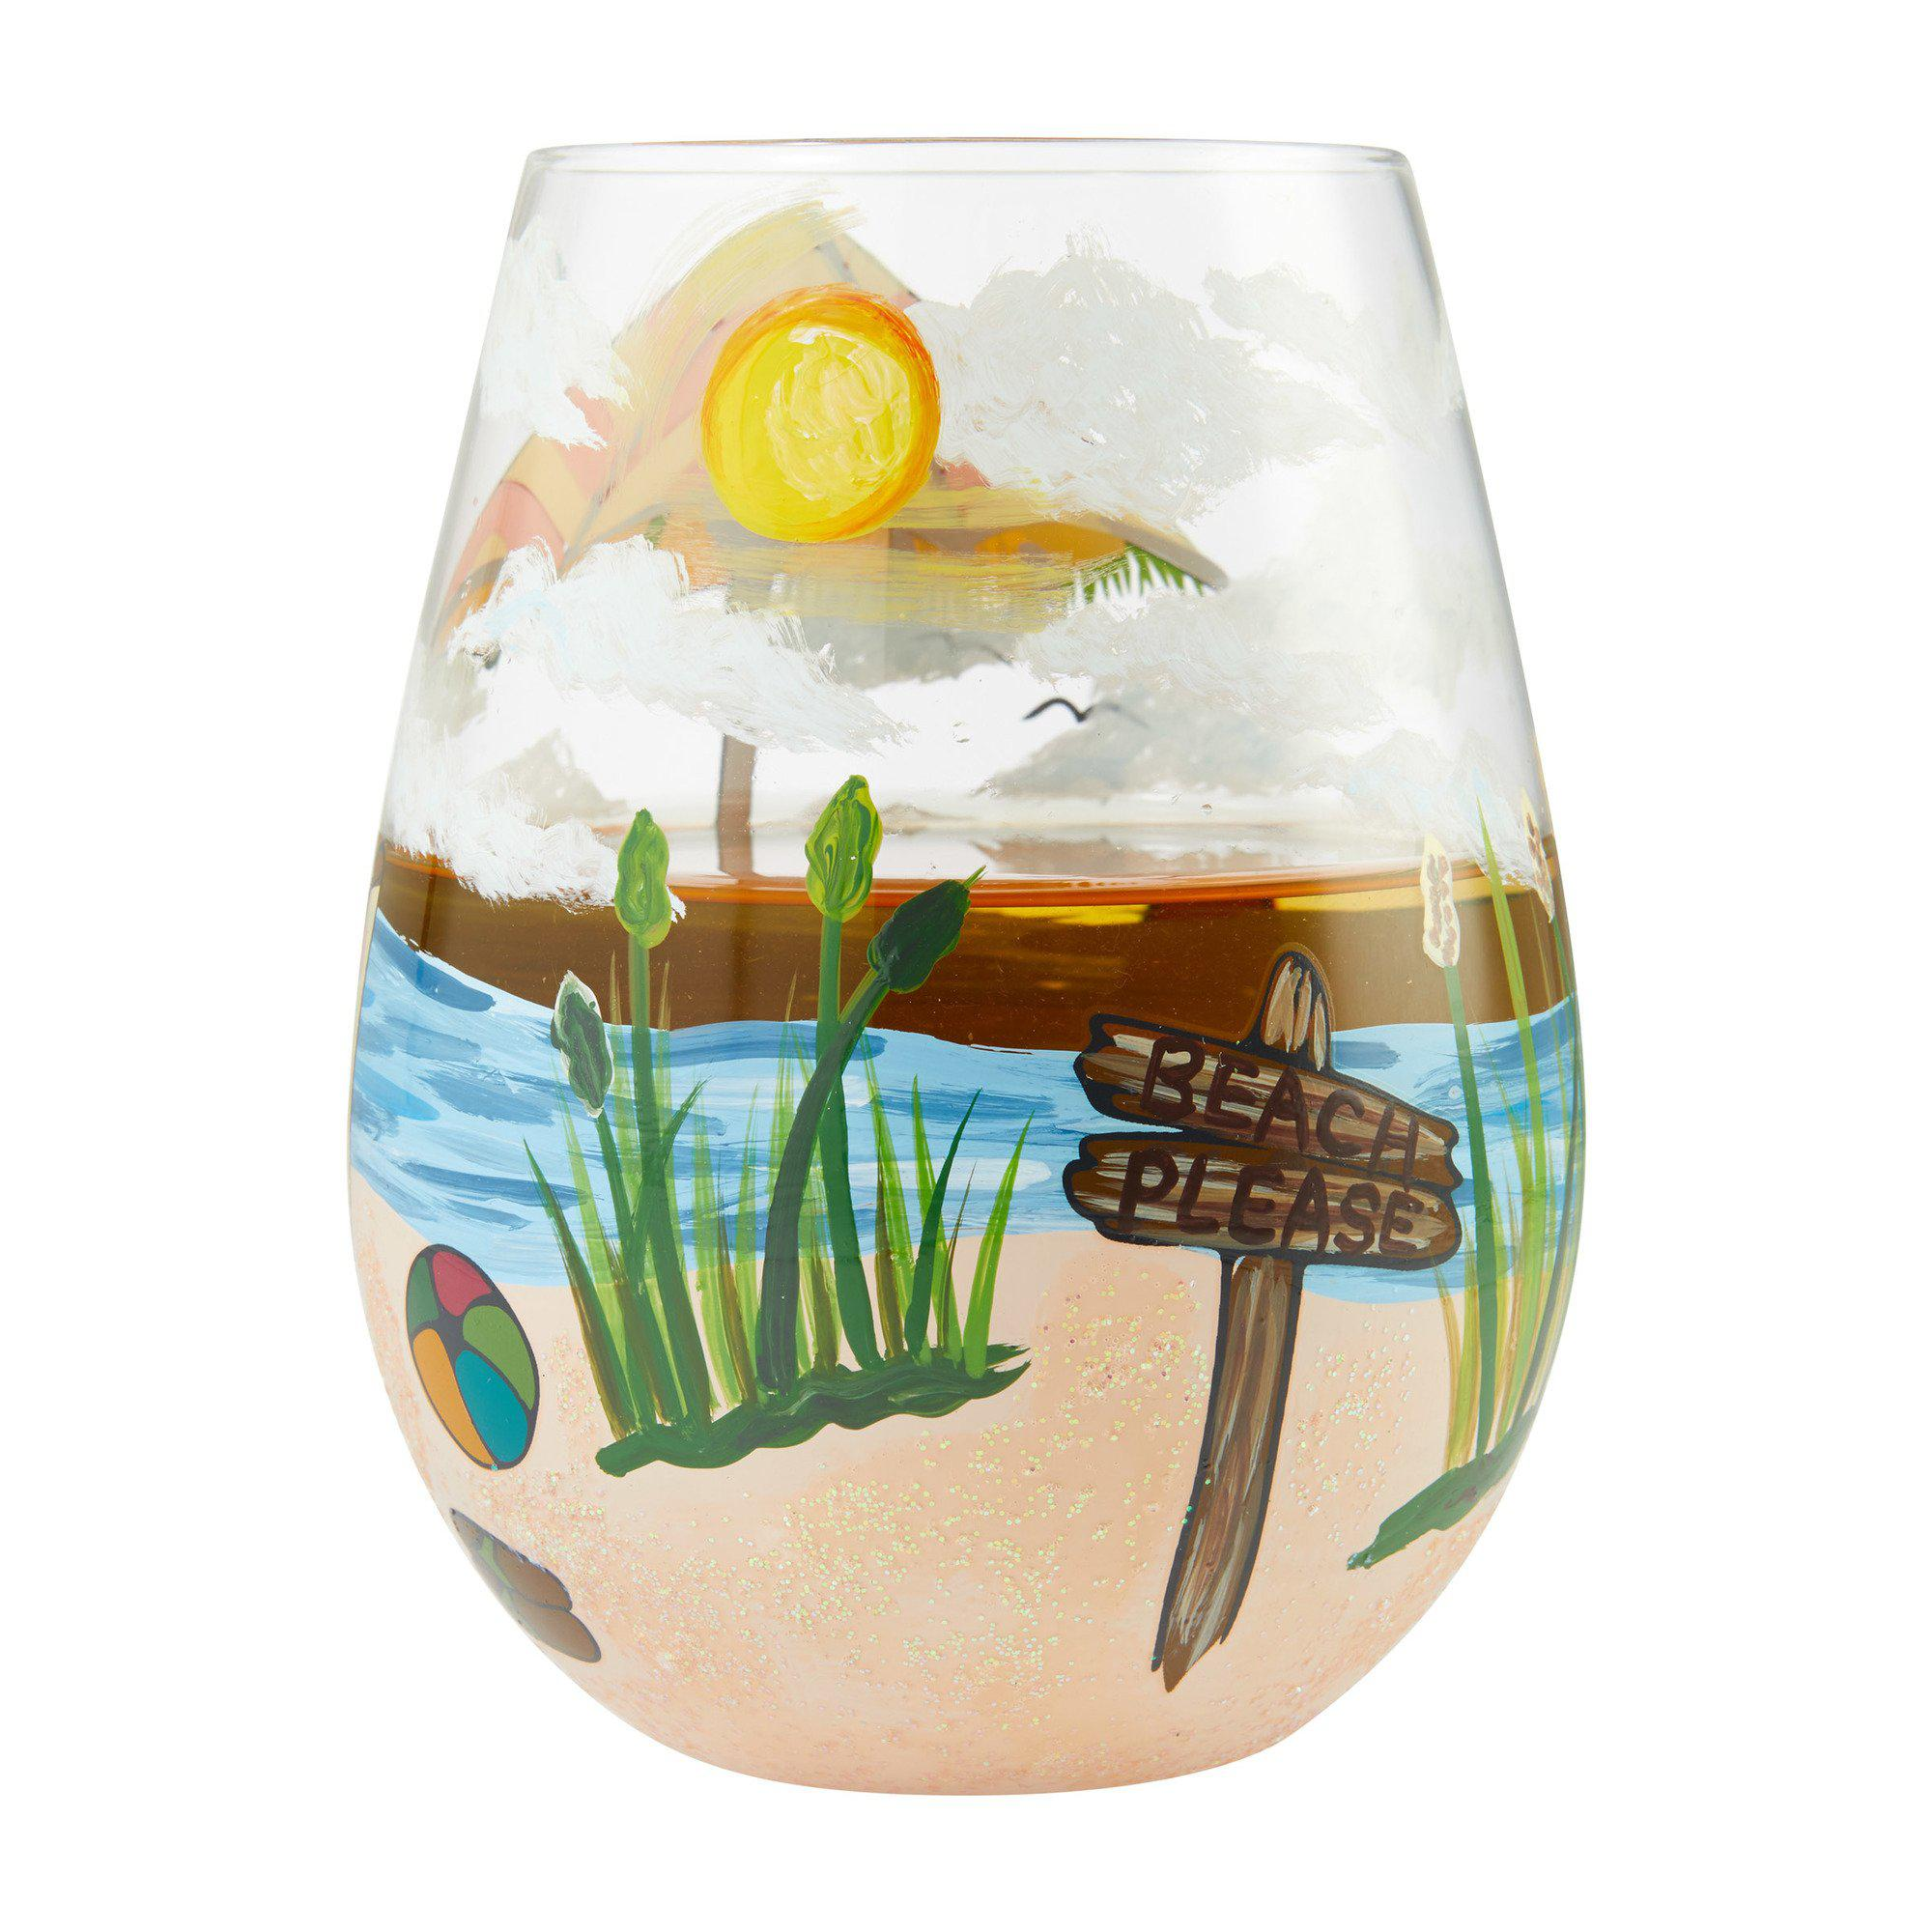 Beach Please Stemless Wine Glass by Lolita®-Stemless Wine Glass-Designs by Lolita® (Enesco)-Top Notch Gift Shop